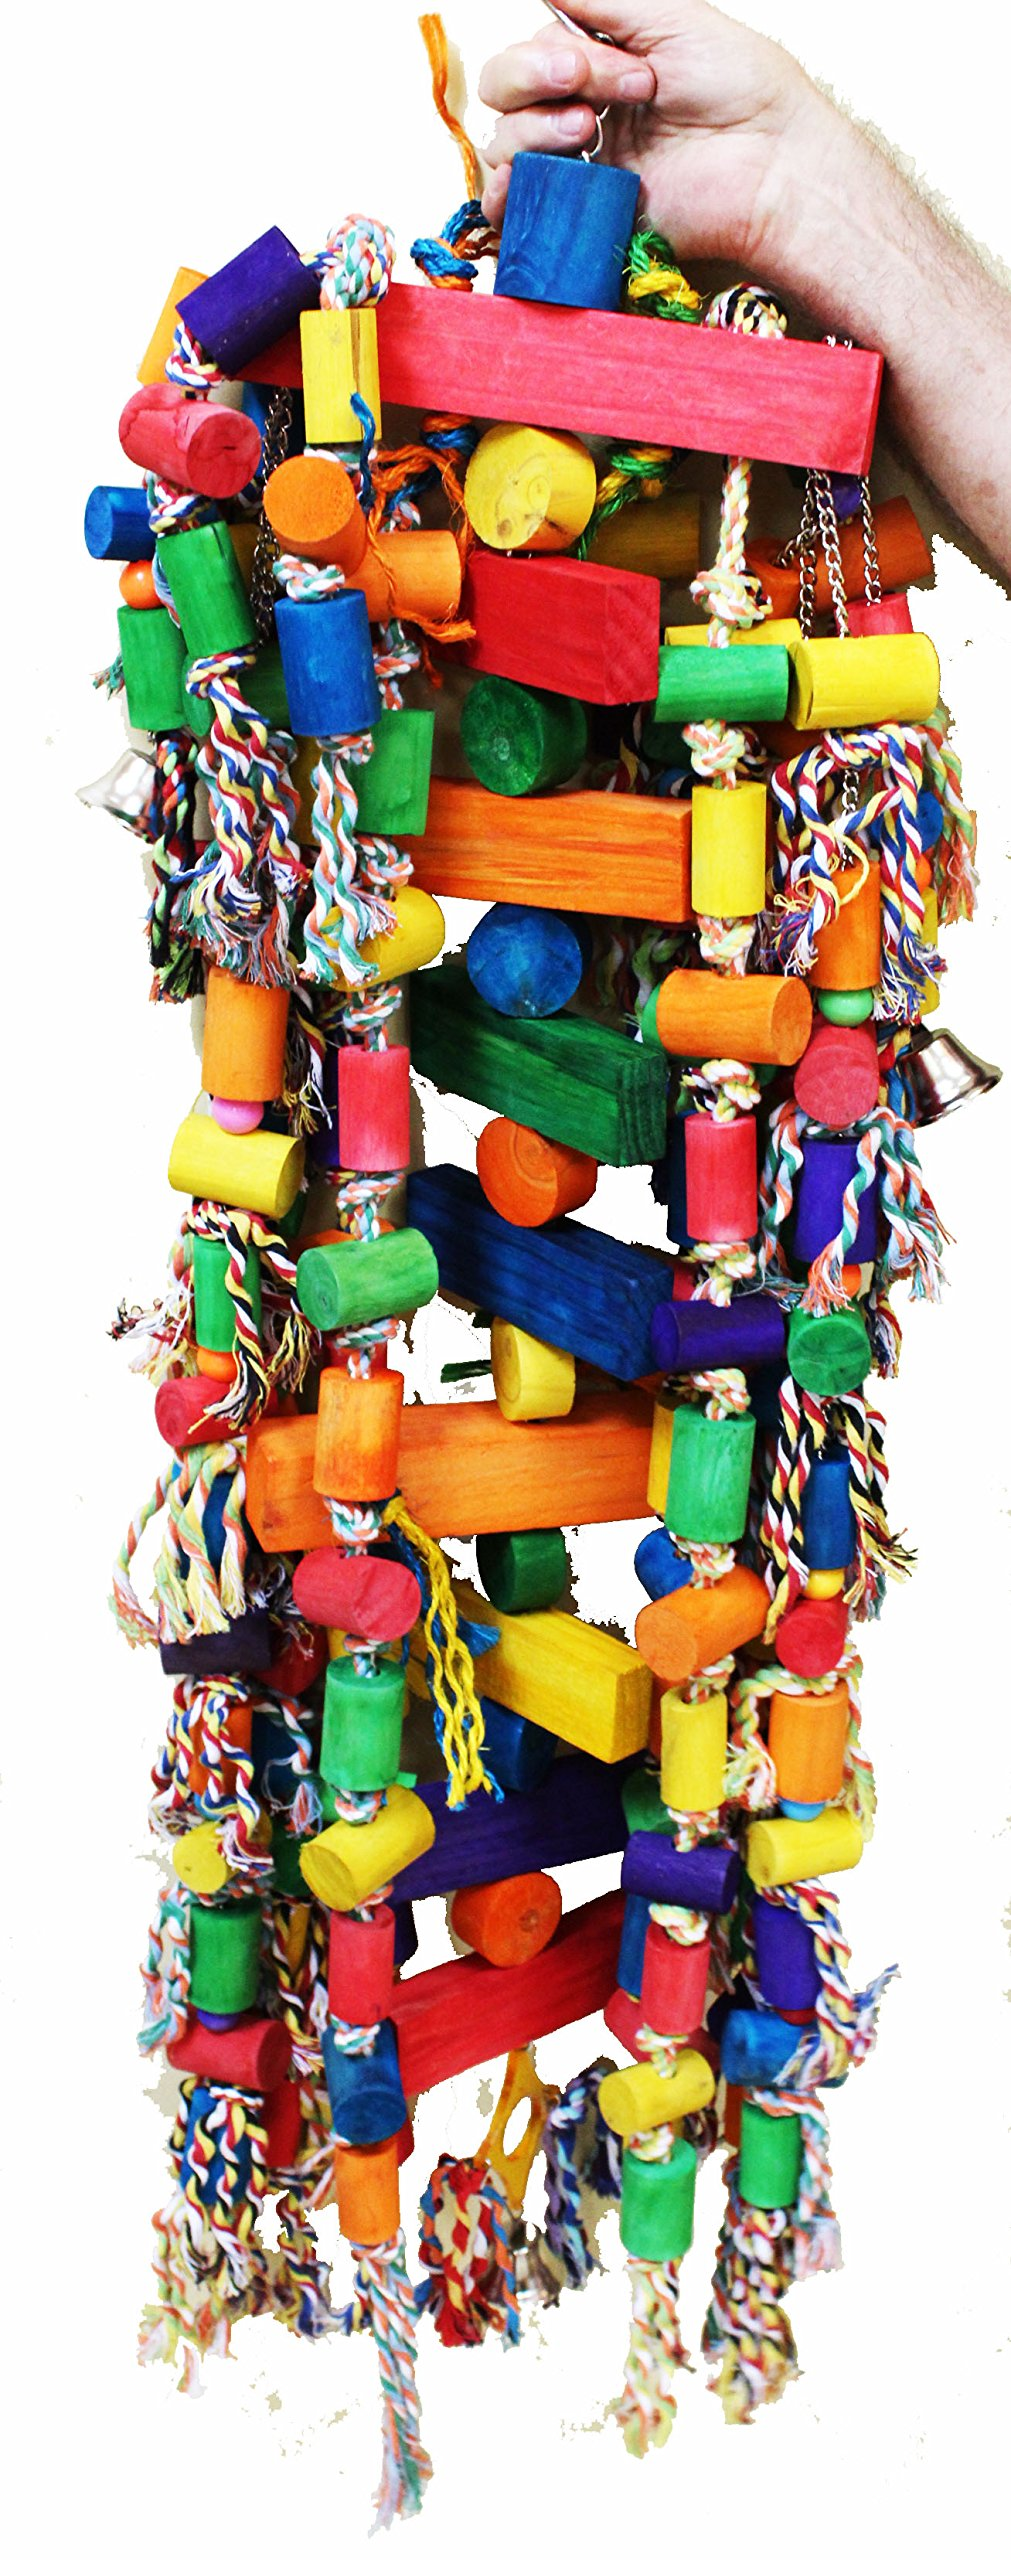 1207 Huge Tower Chewer Parrot Bird Cage Toys Cages Toy Chew Macaw Cockatoo Big by Bonka Bird Toys (Image #1)